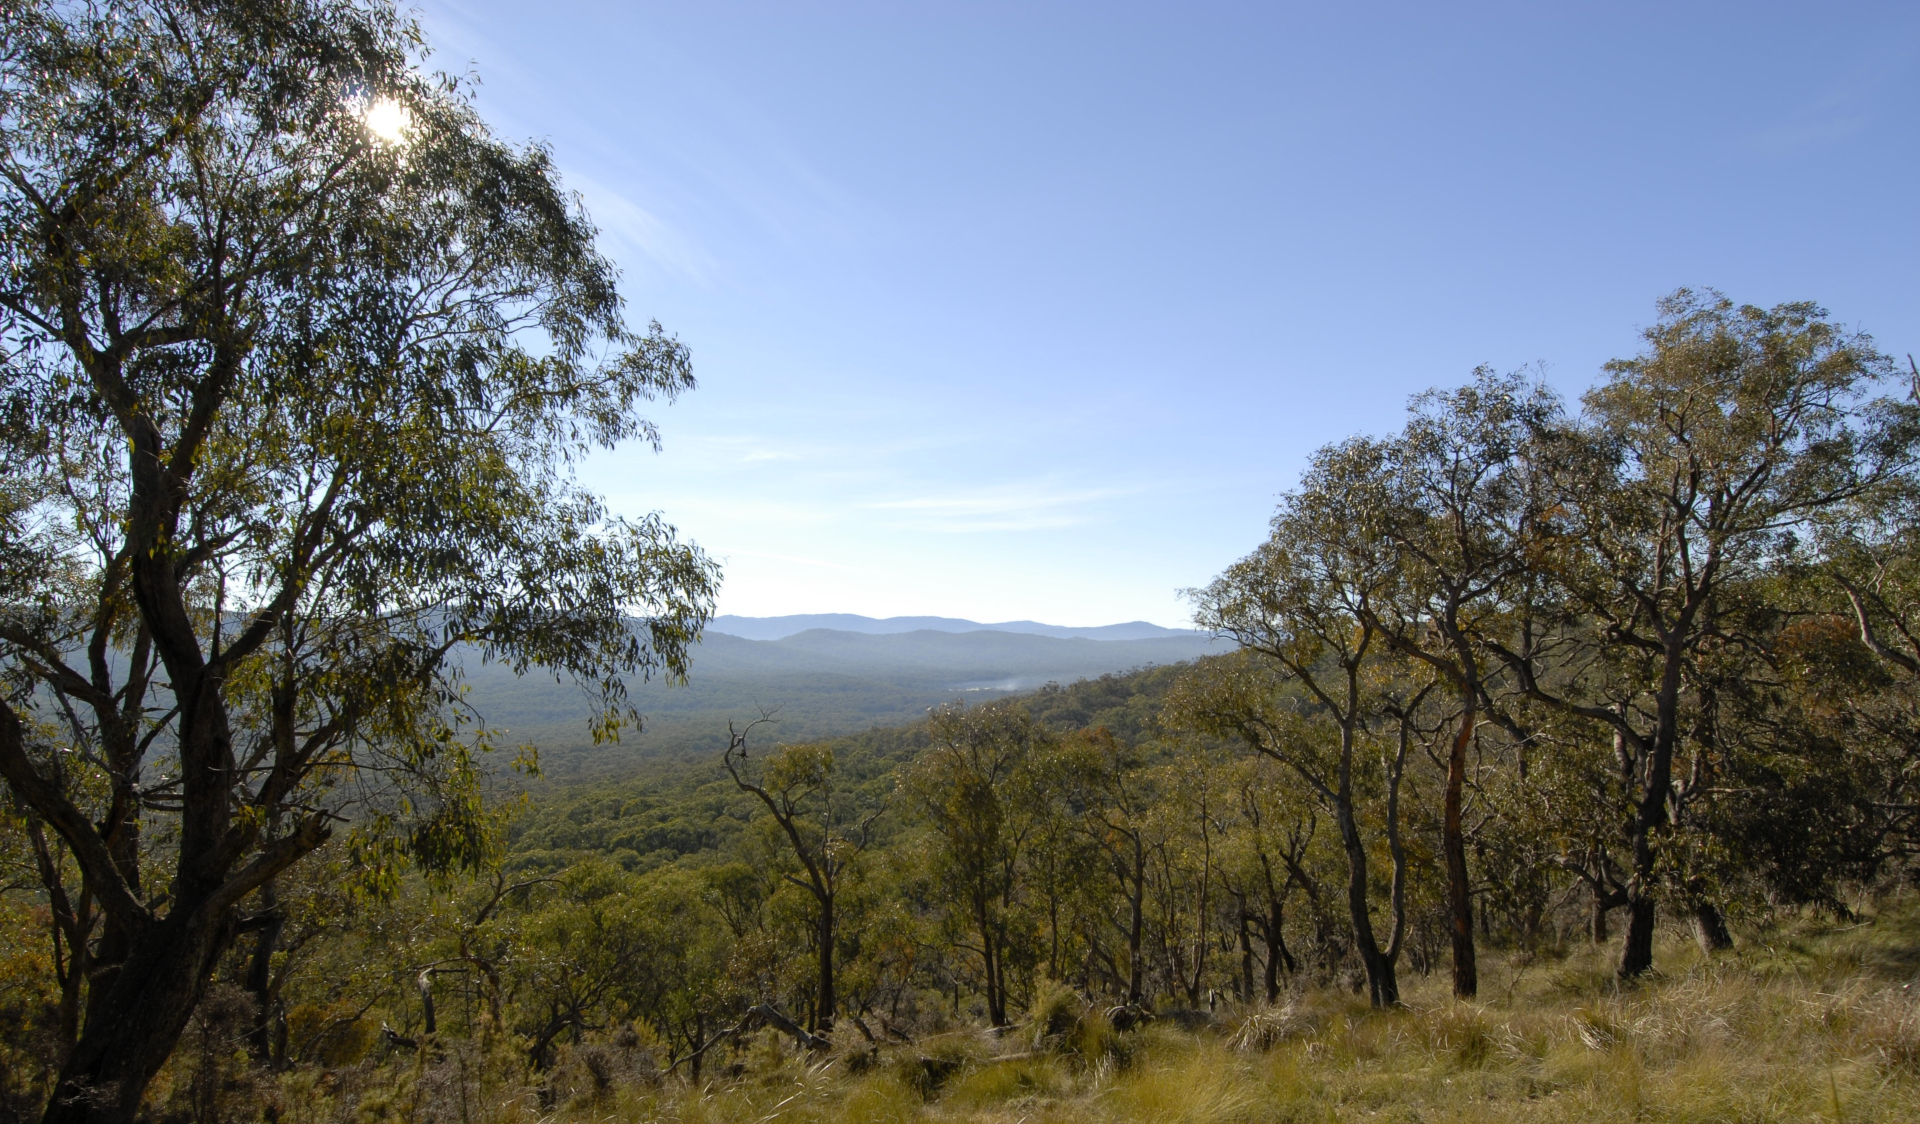 A view of Bunyip State Park